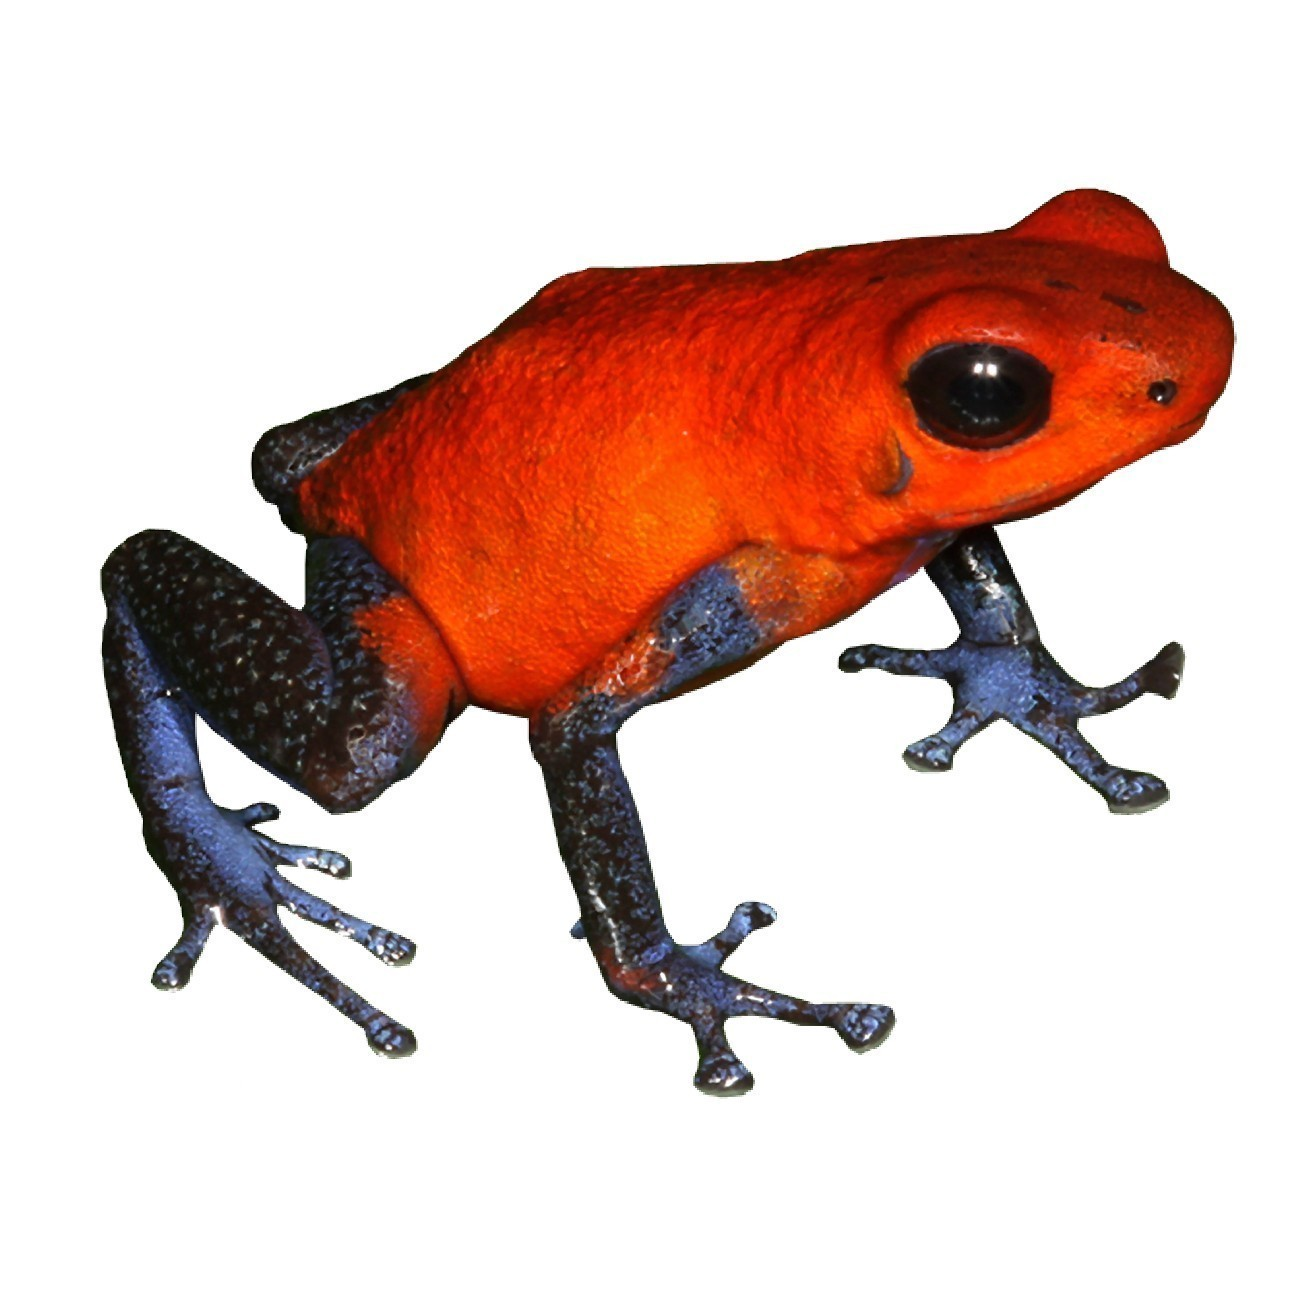 Red And Blue Frog Vinyl Decal By Wilsongraphics On Zibbet